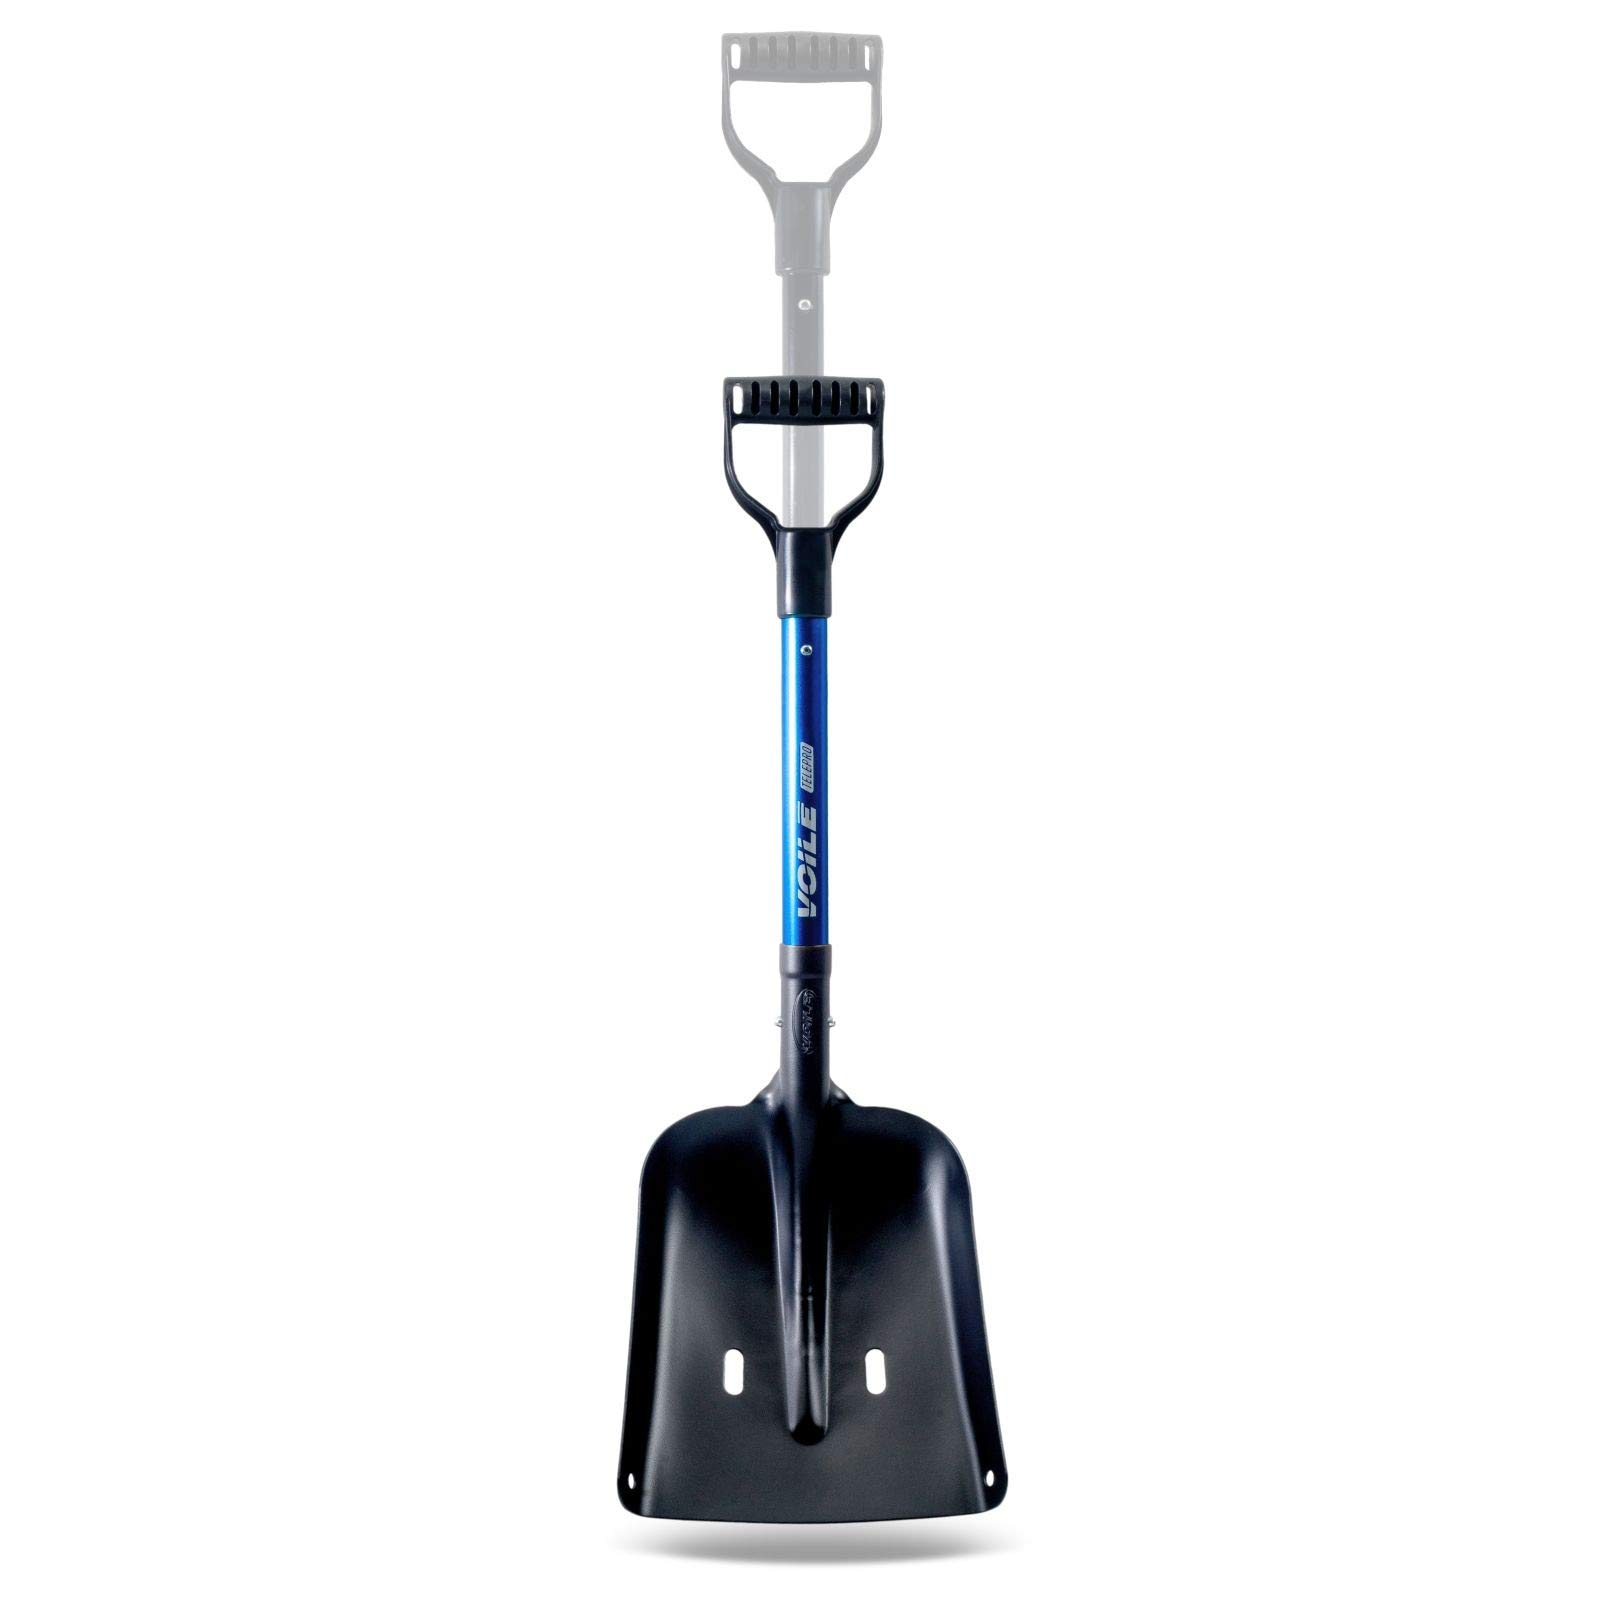 Voile Telepro Avalanche Shovel by Voile